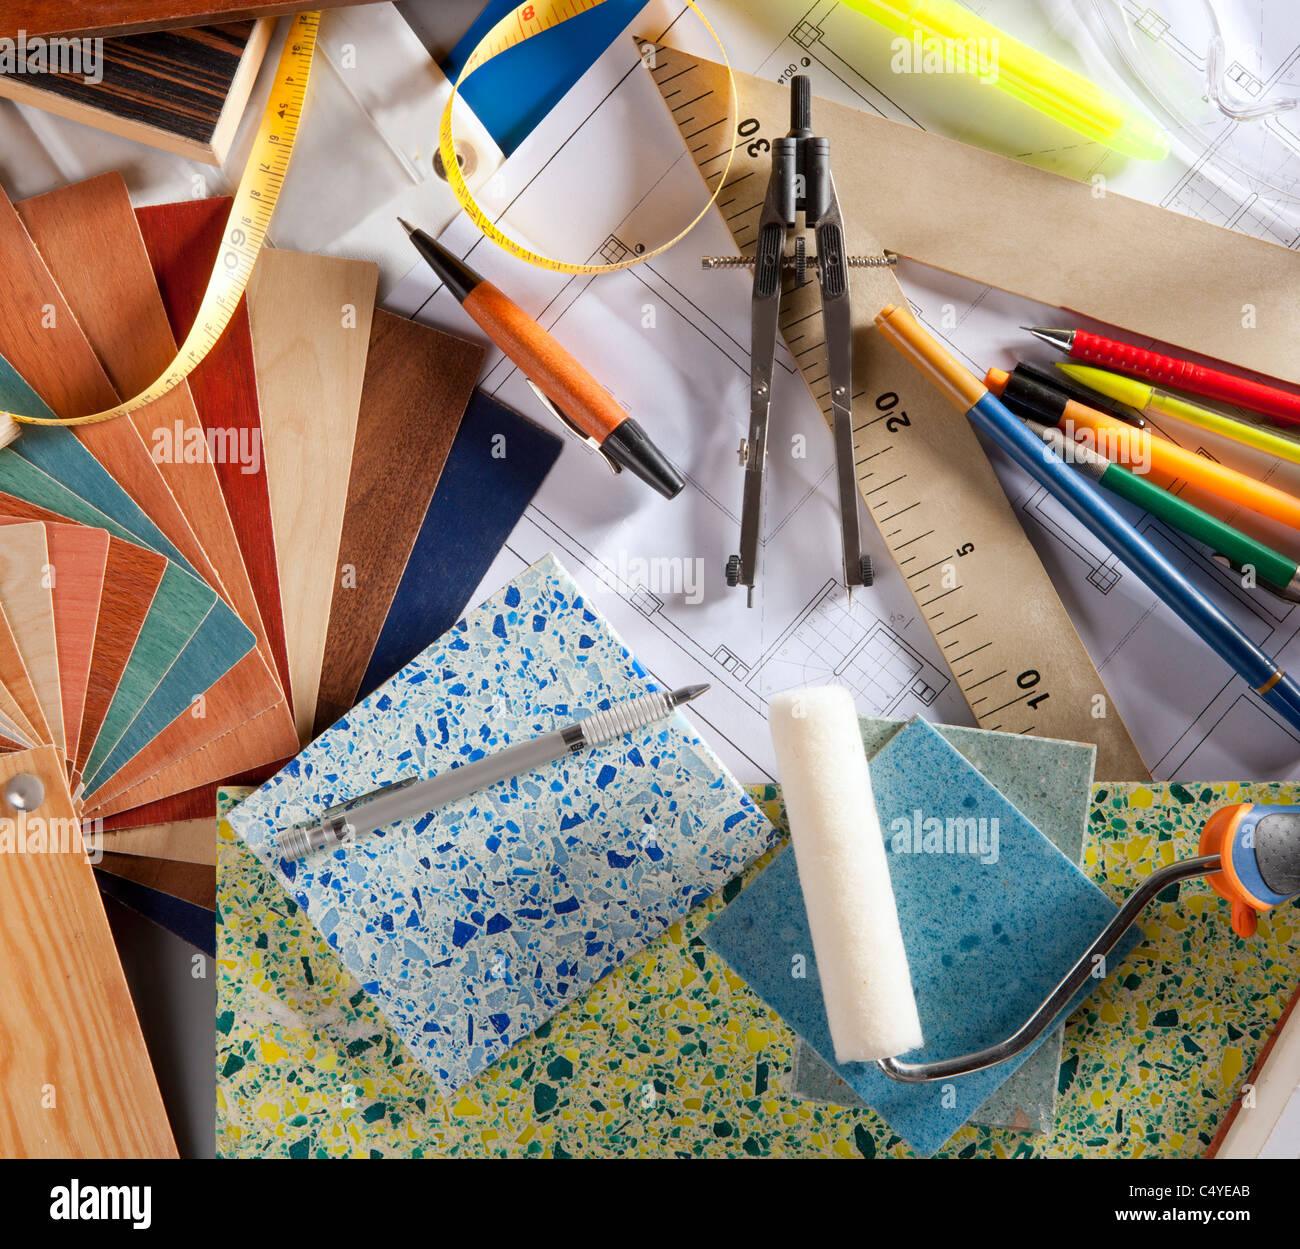 Architect Or Interior Designer Workplace Desk And Design Tools With Stock Photo Alamy